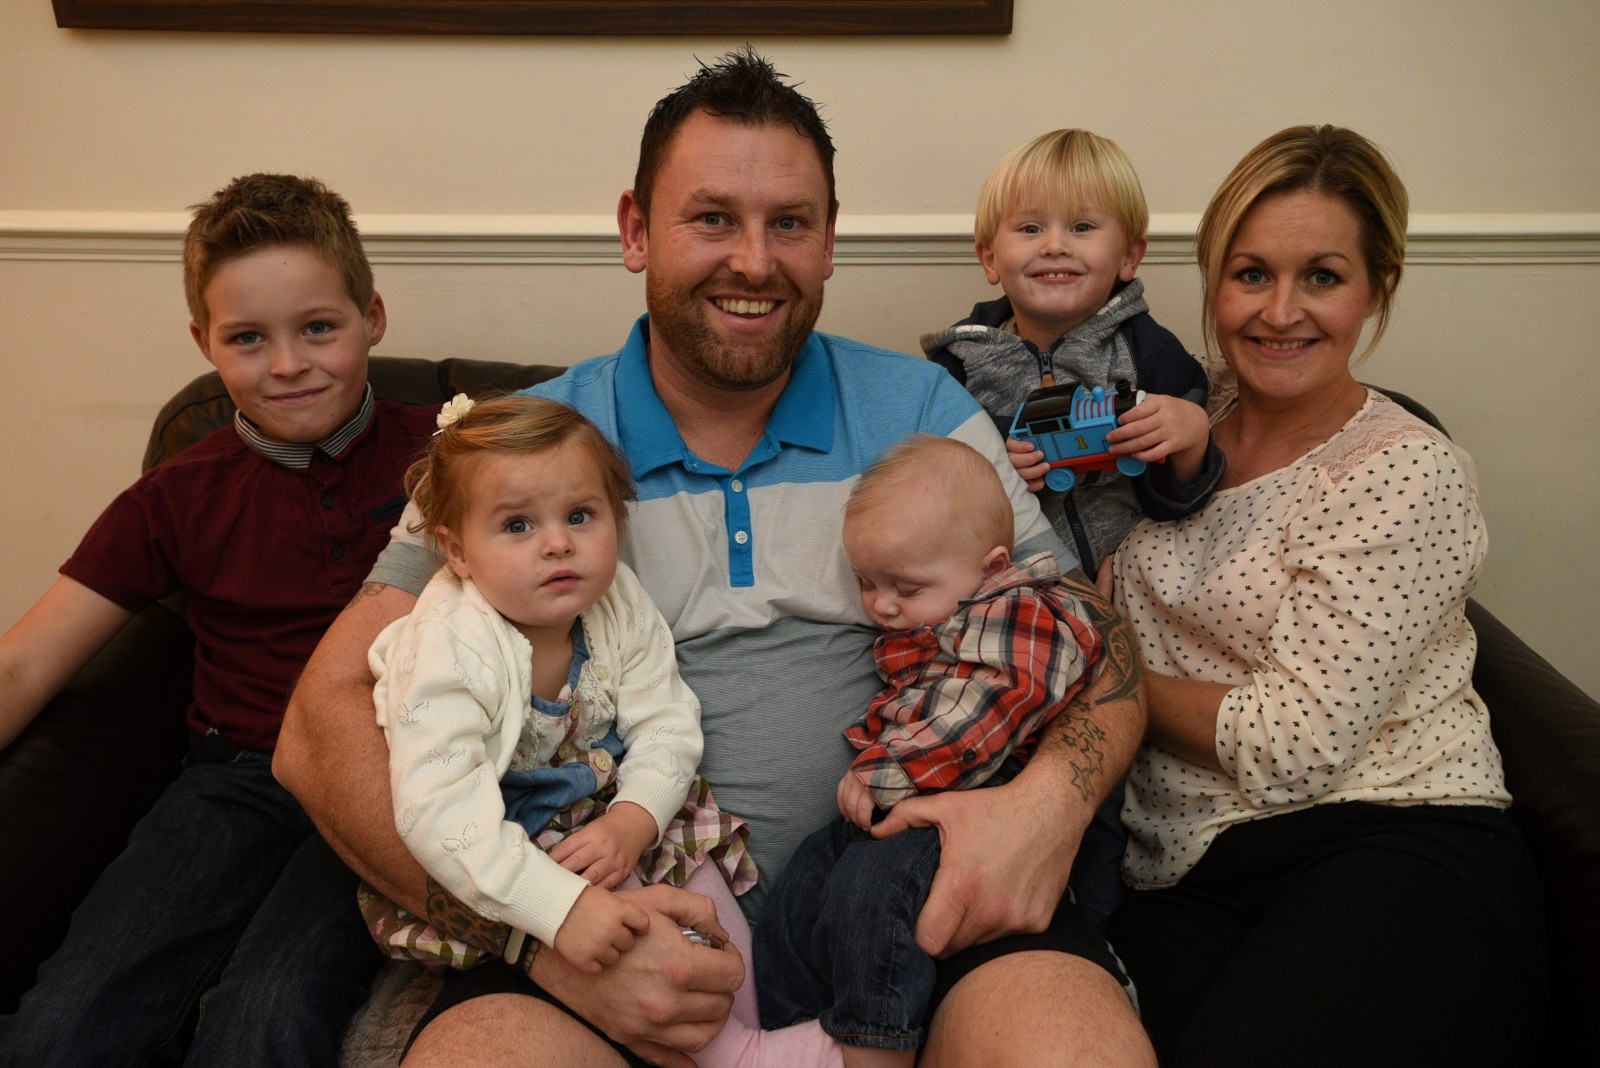 Dad-of-five was planning his own funeral when something remarkable happened